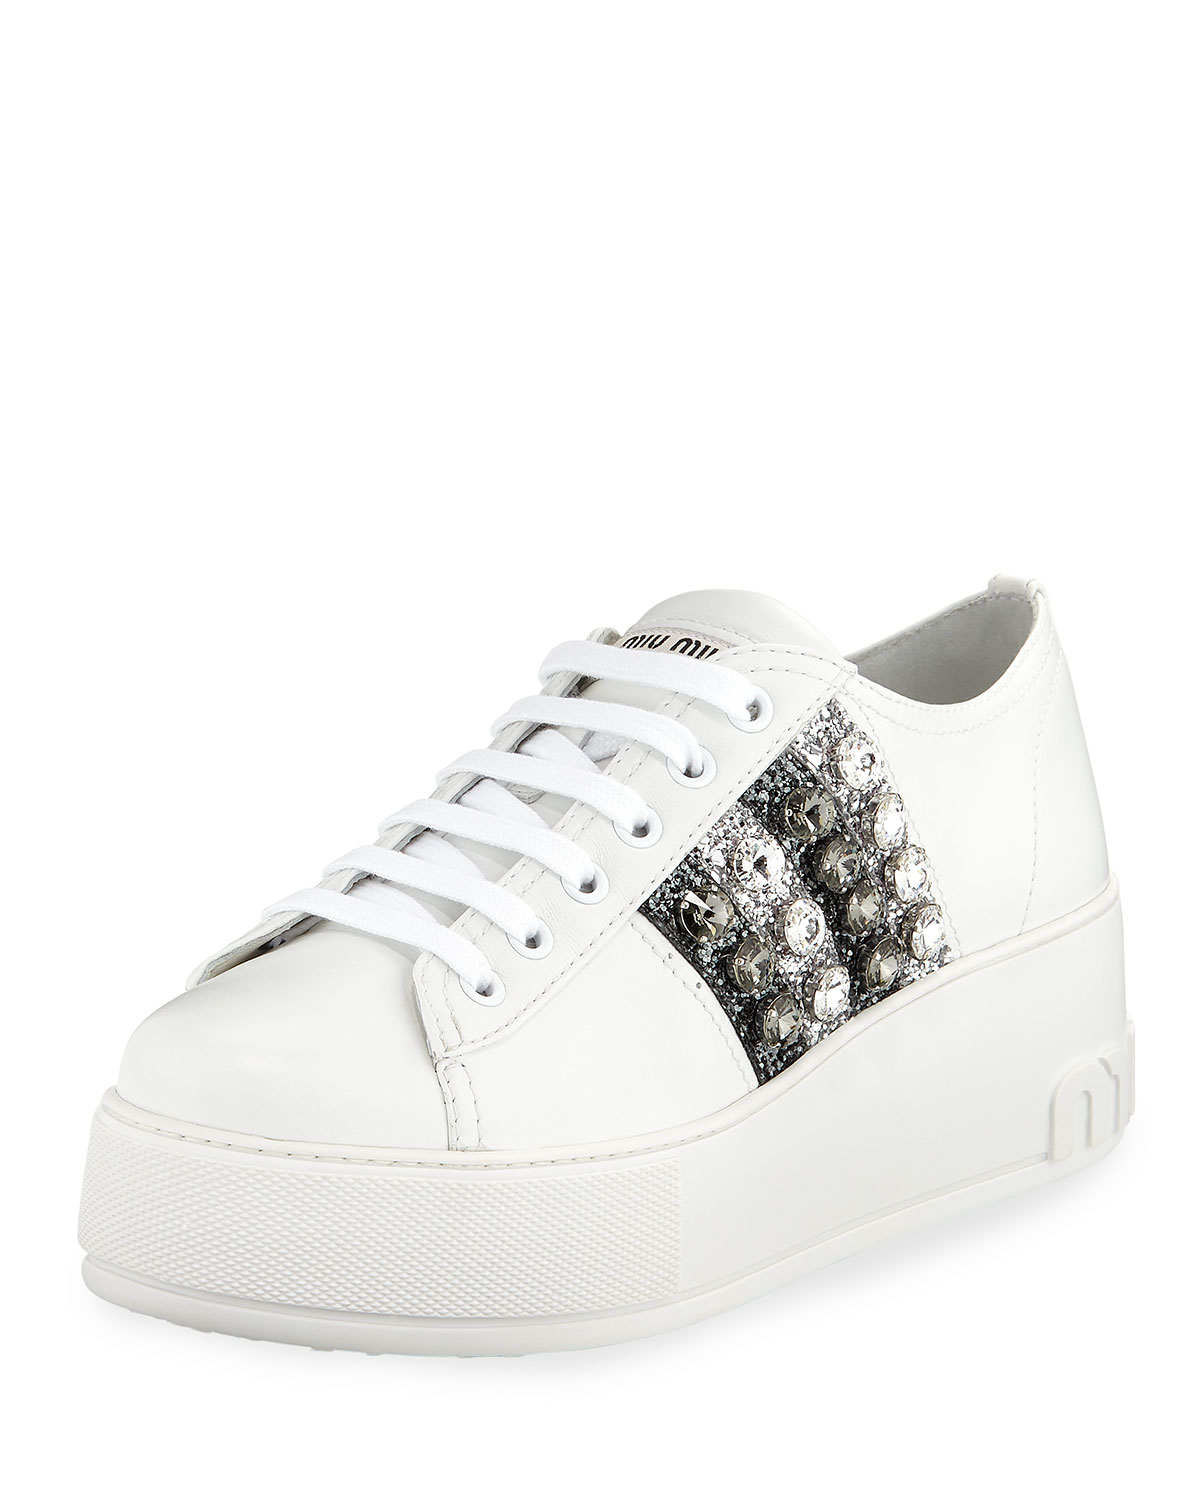 official photos 6a91f fcaca Leather Platform Sneakers with Jeweled Stripes